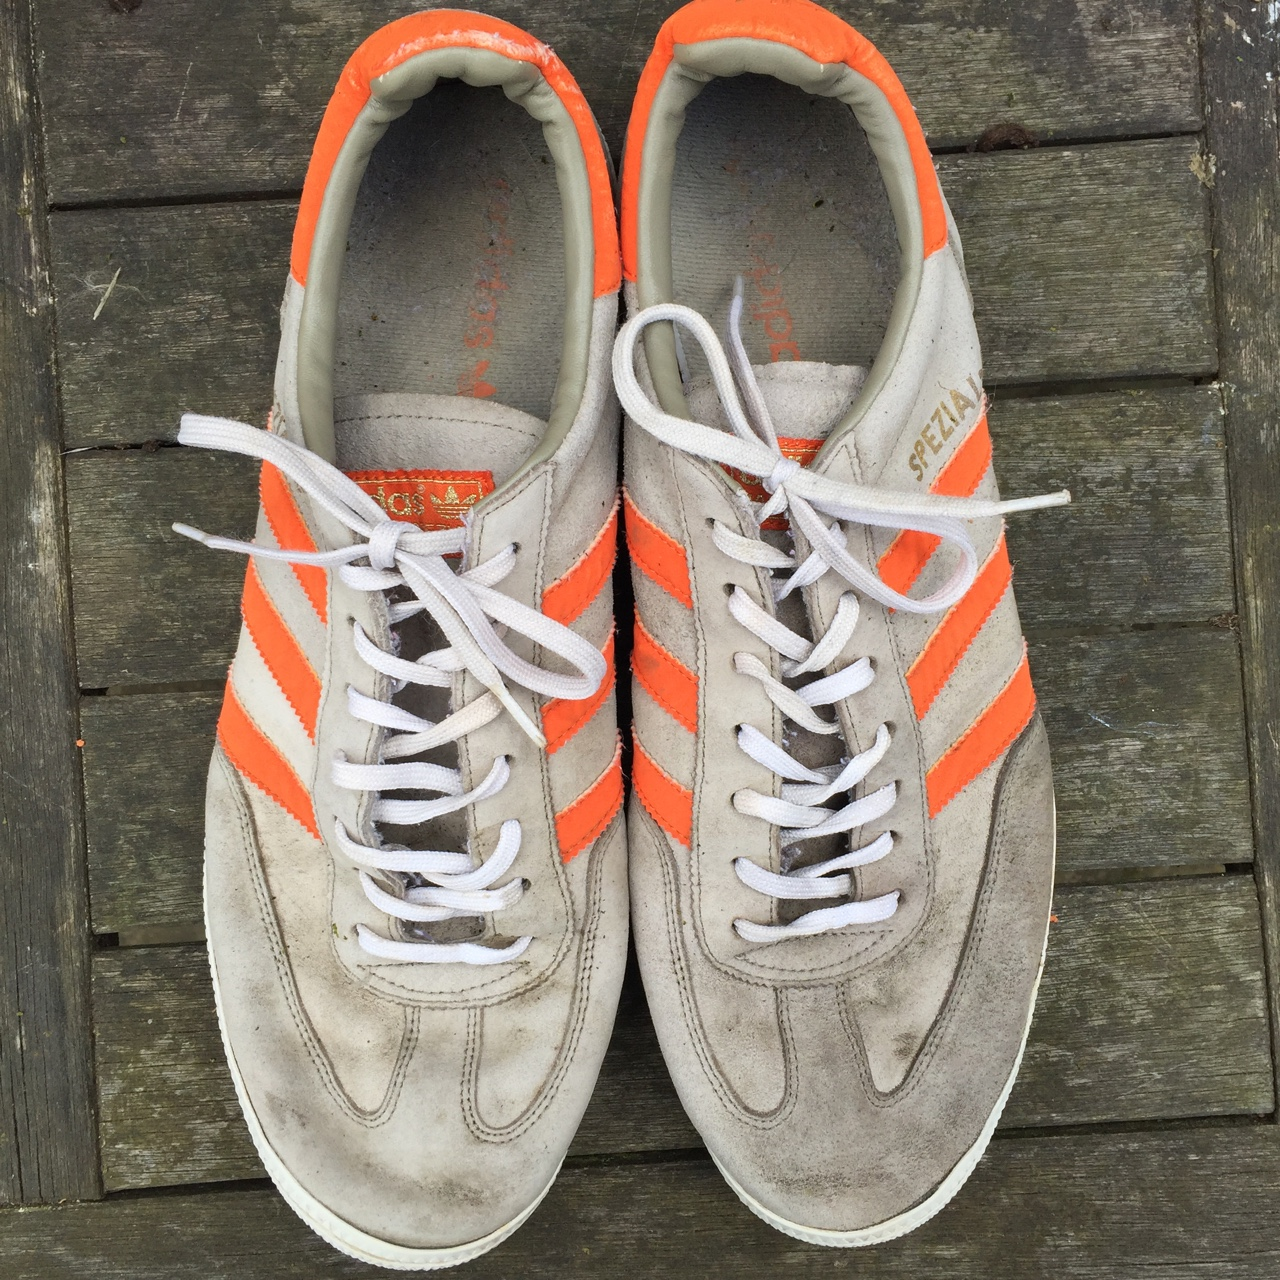 skate shoes website for discount new collection Adidas Spezial Grey/Orange Trainers HMU WITH LOWER... - Depop